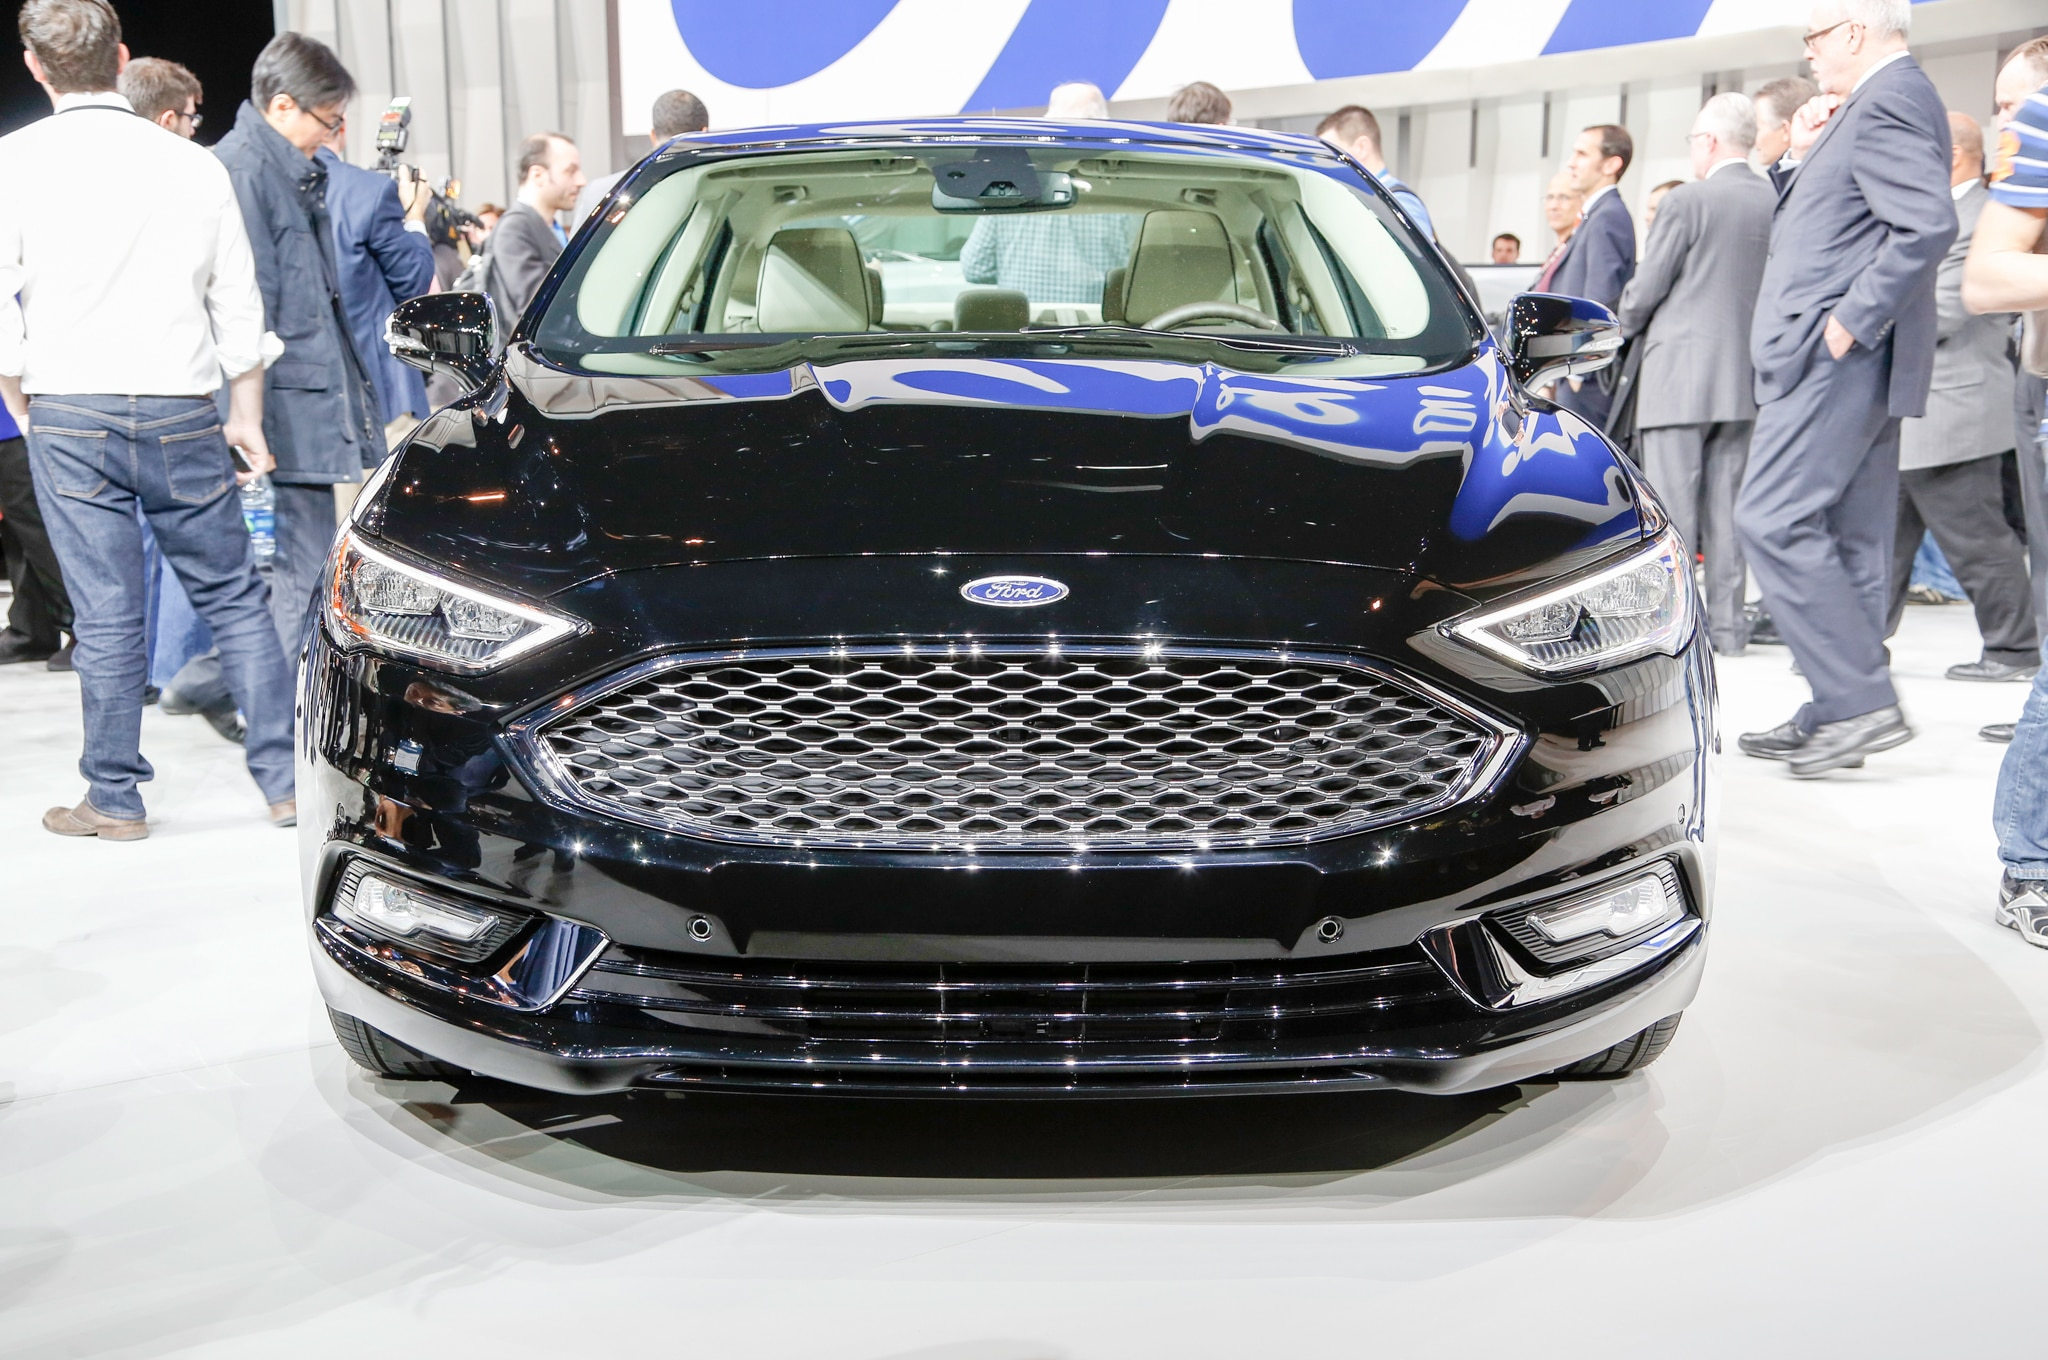 2020 Ford Fusion Refreshed for Detroit, Adds 325-HP V6 Sport Model